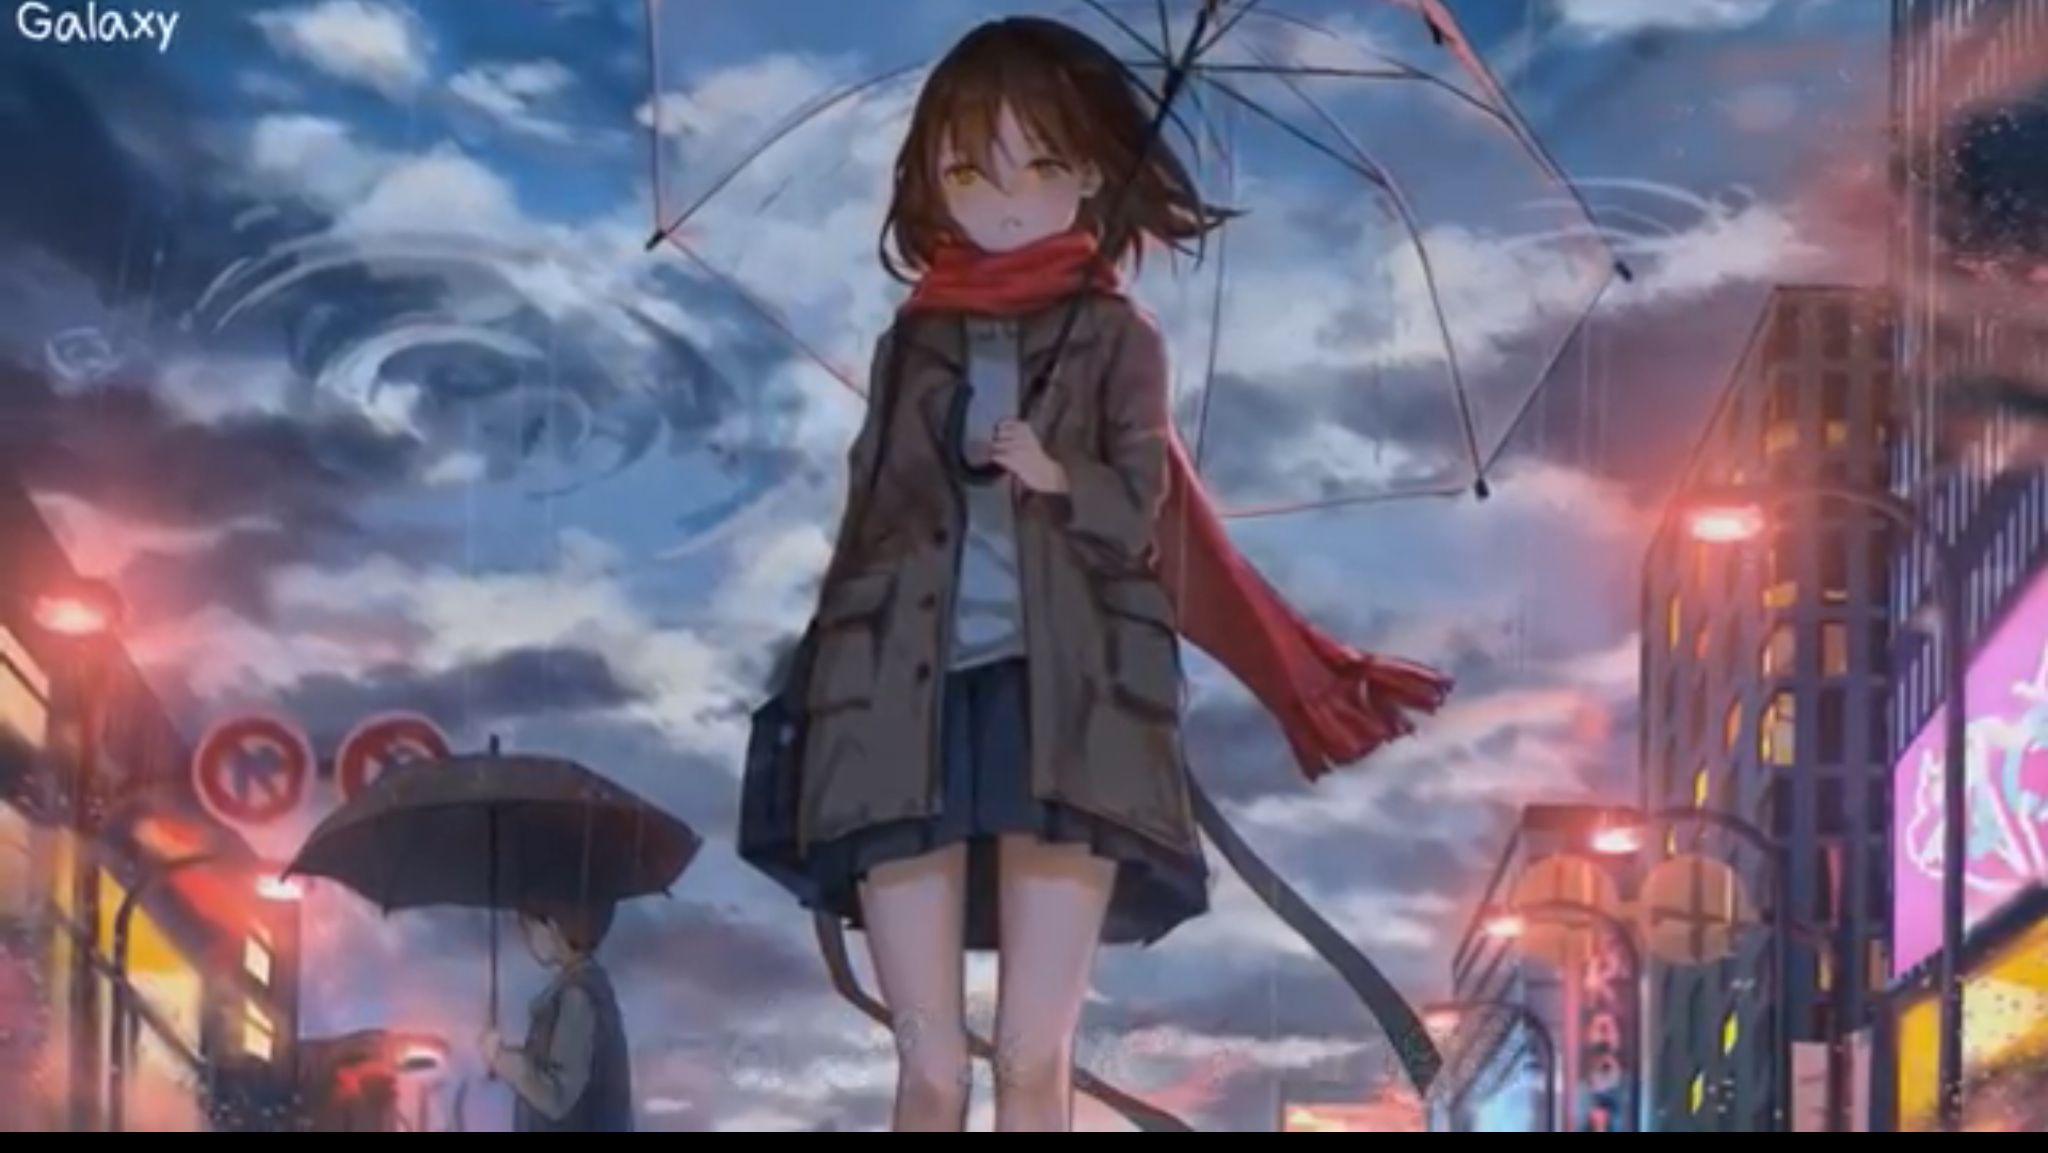 Pin By Shadow Love On Anime Nightcore Tired Of Love Anime